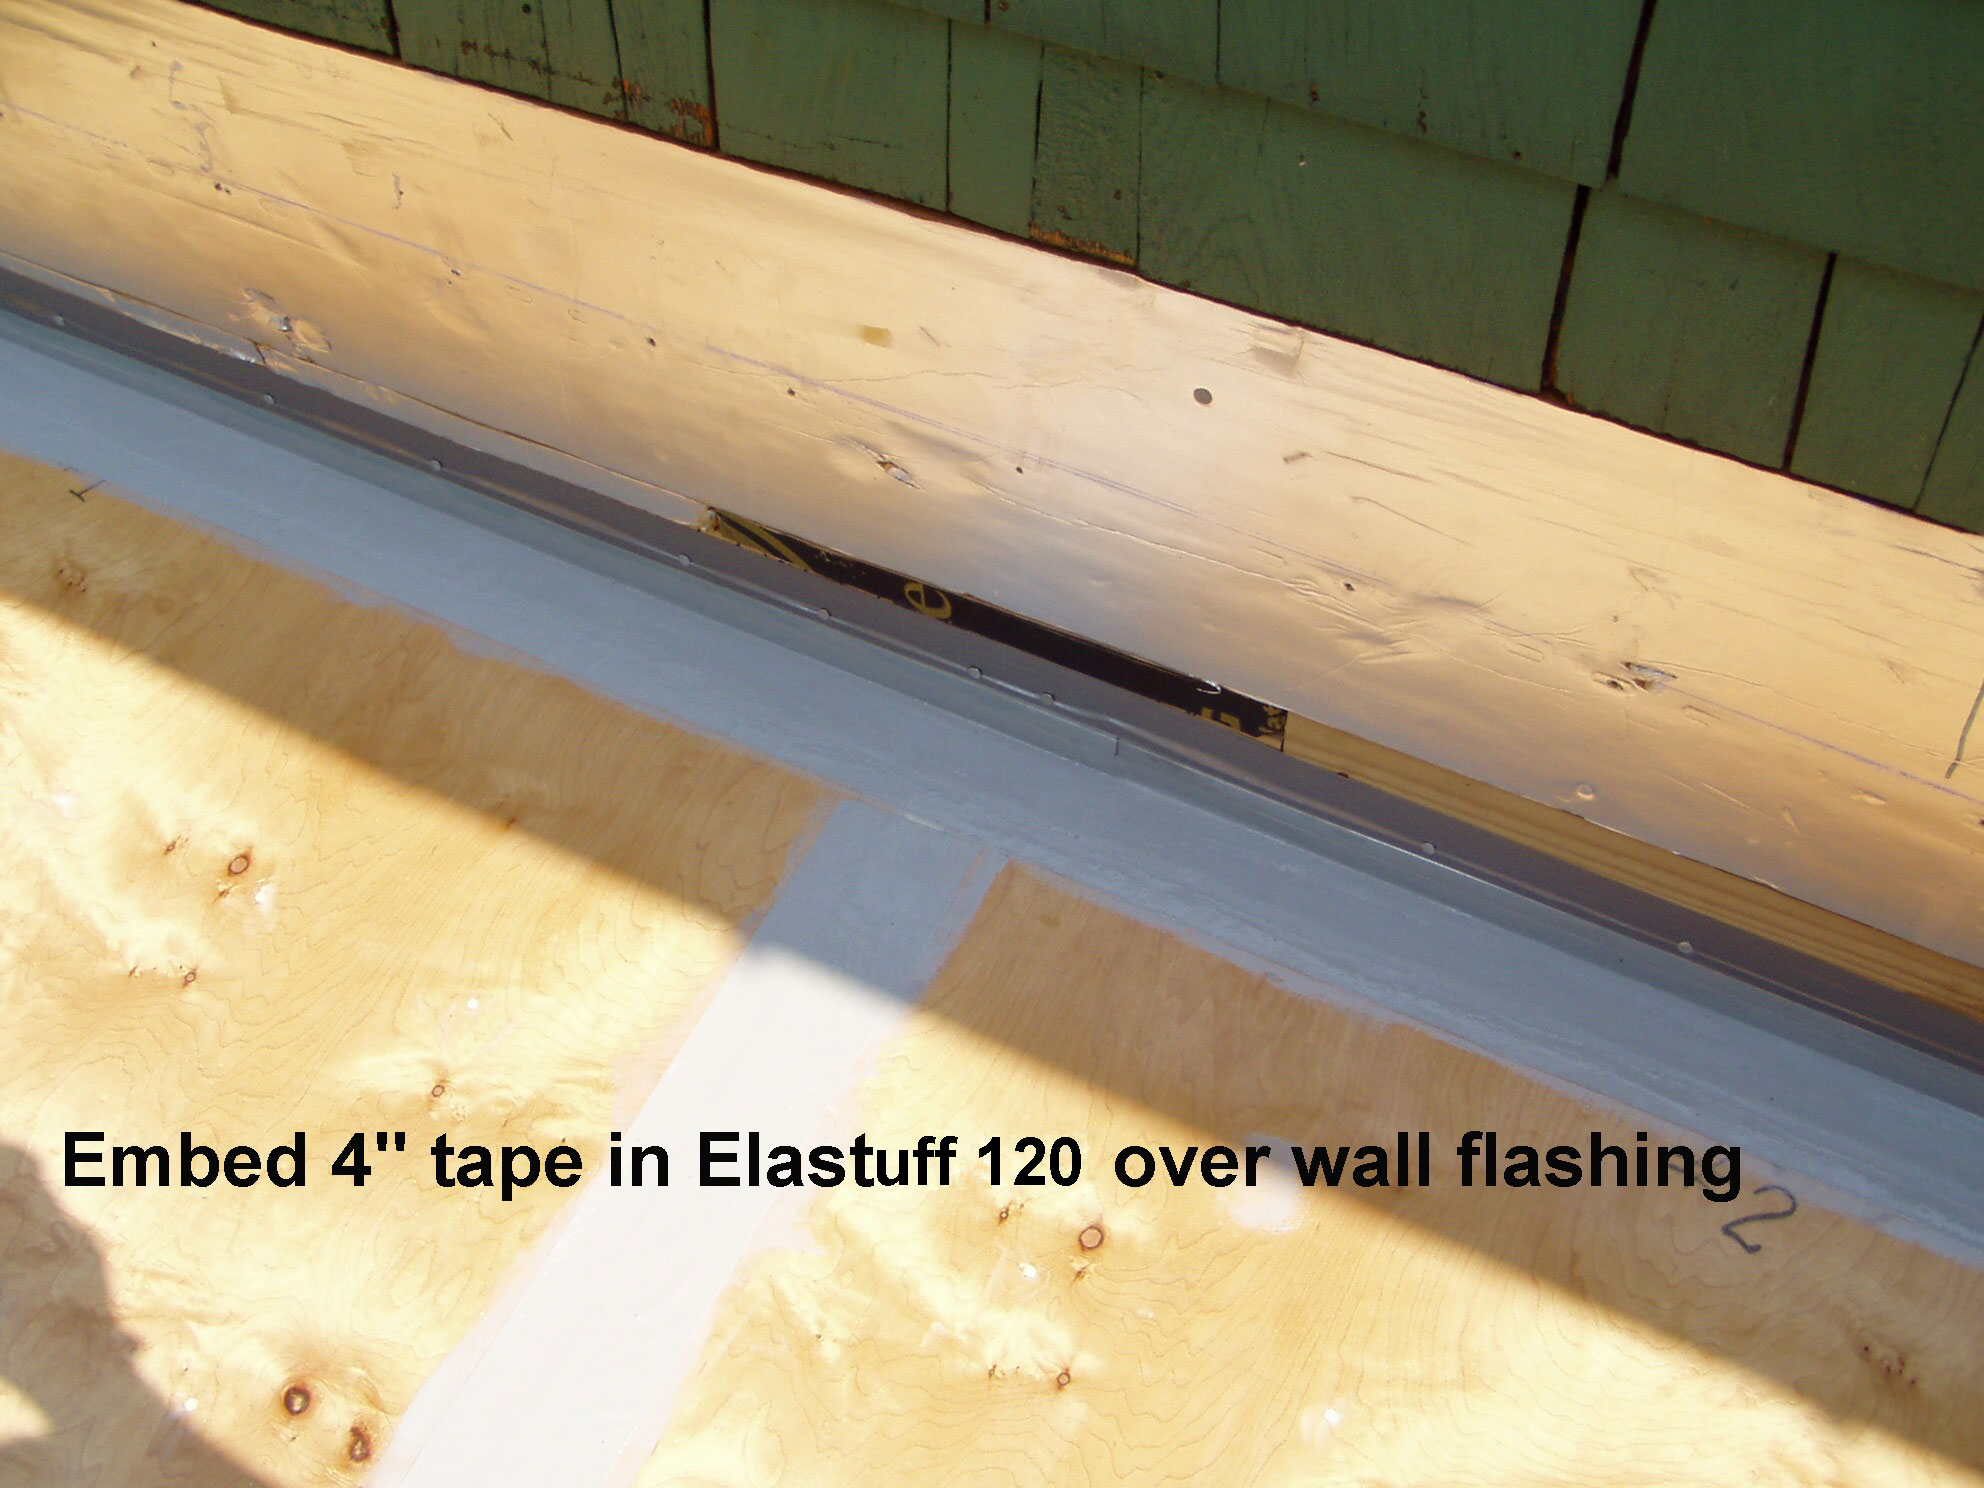 4 inch tape embeded in Elastuff 120 at flashing